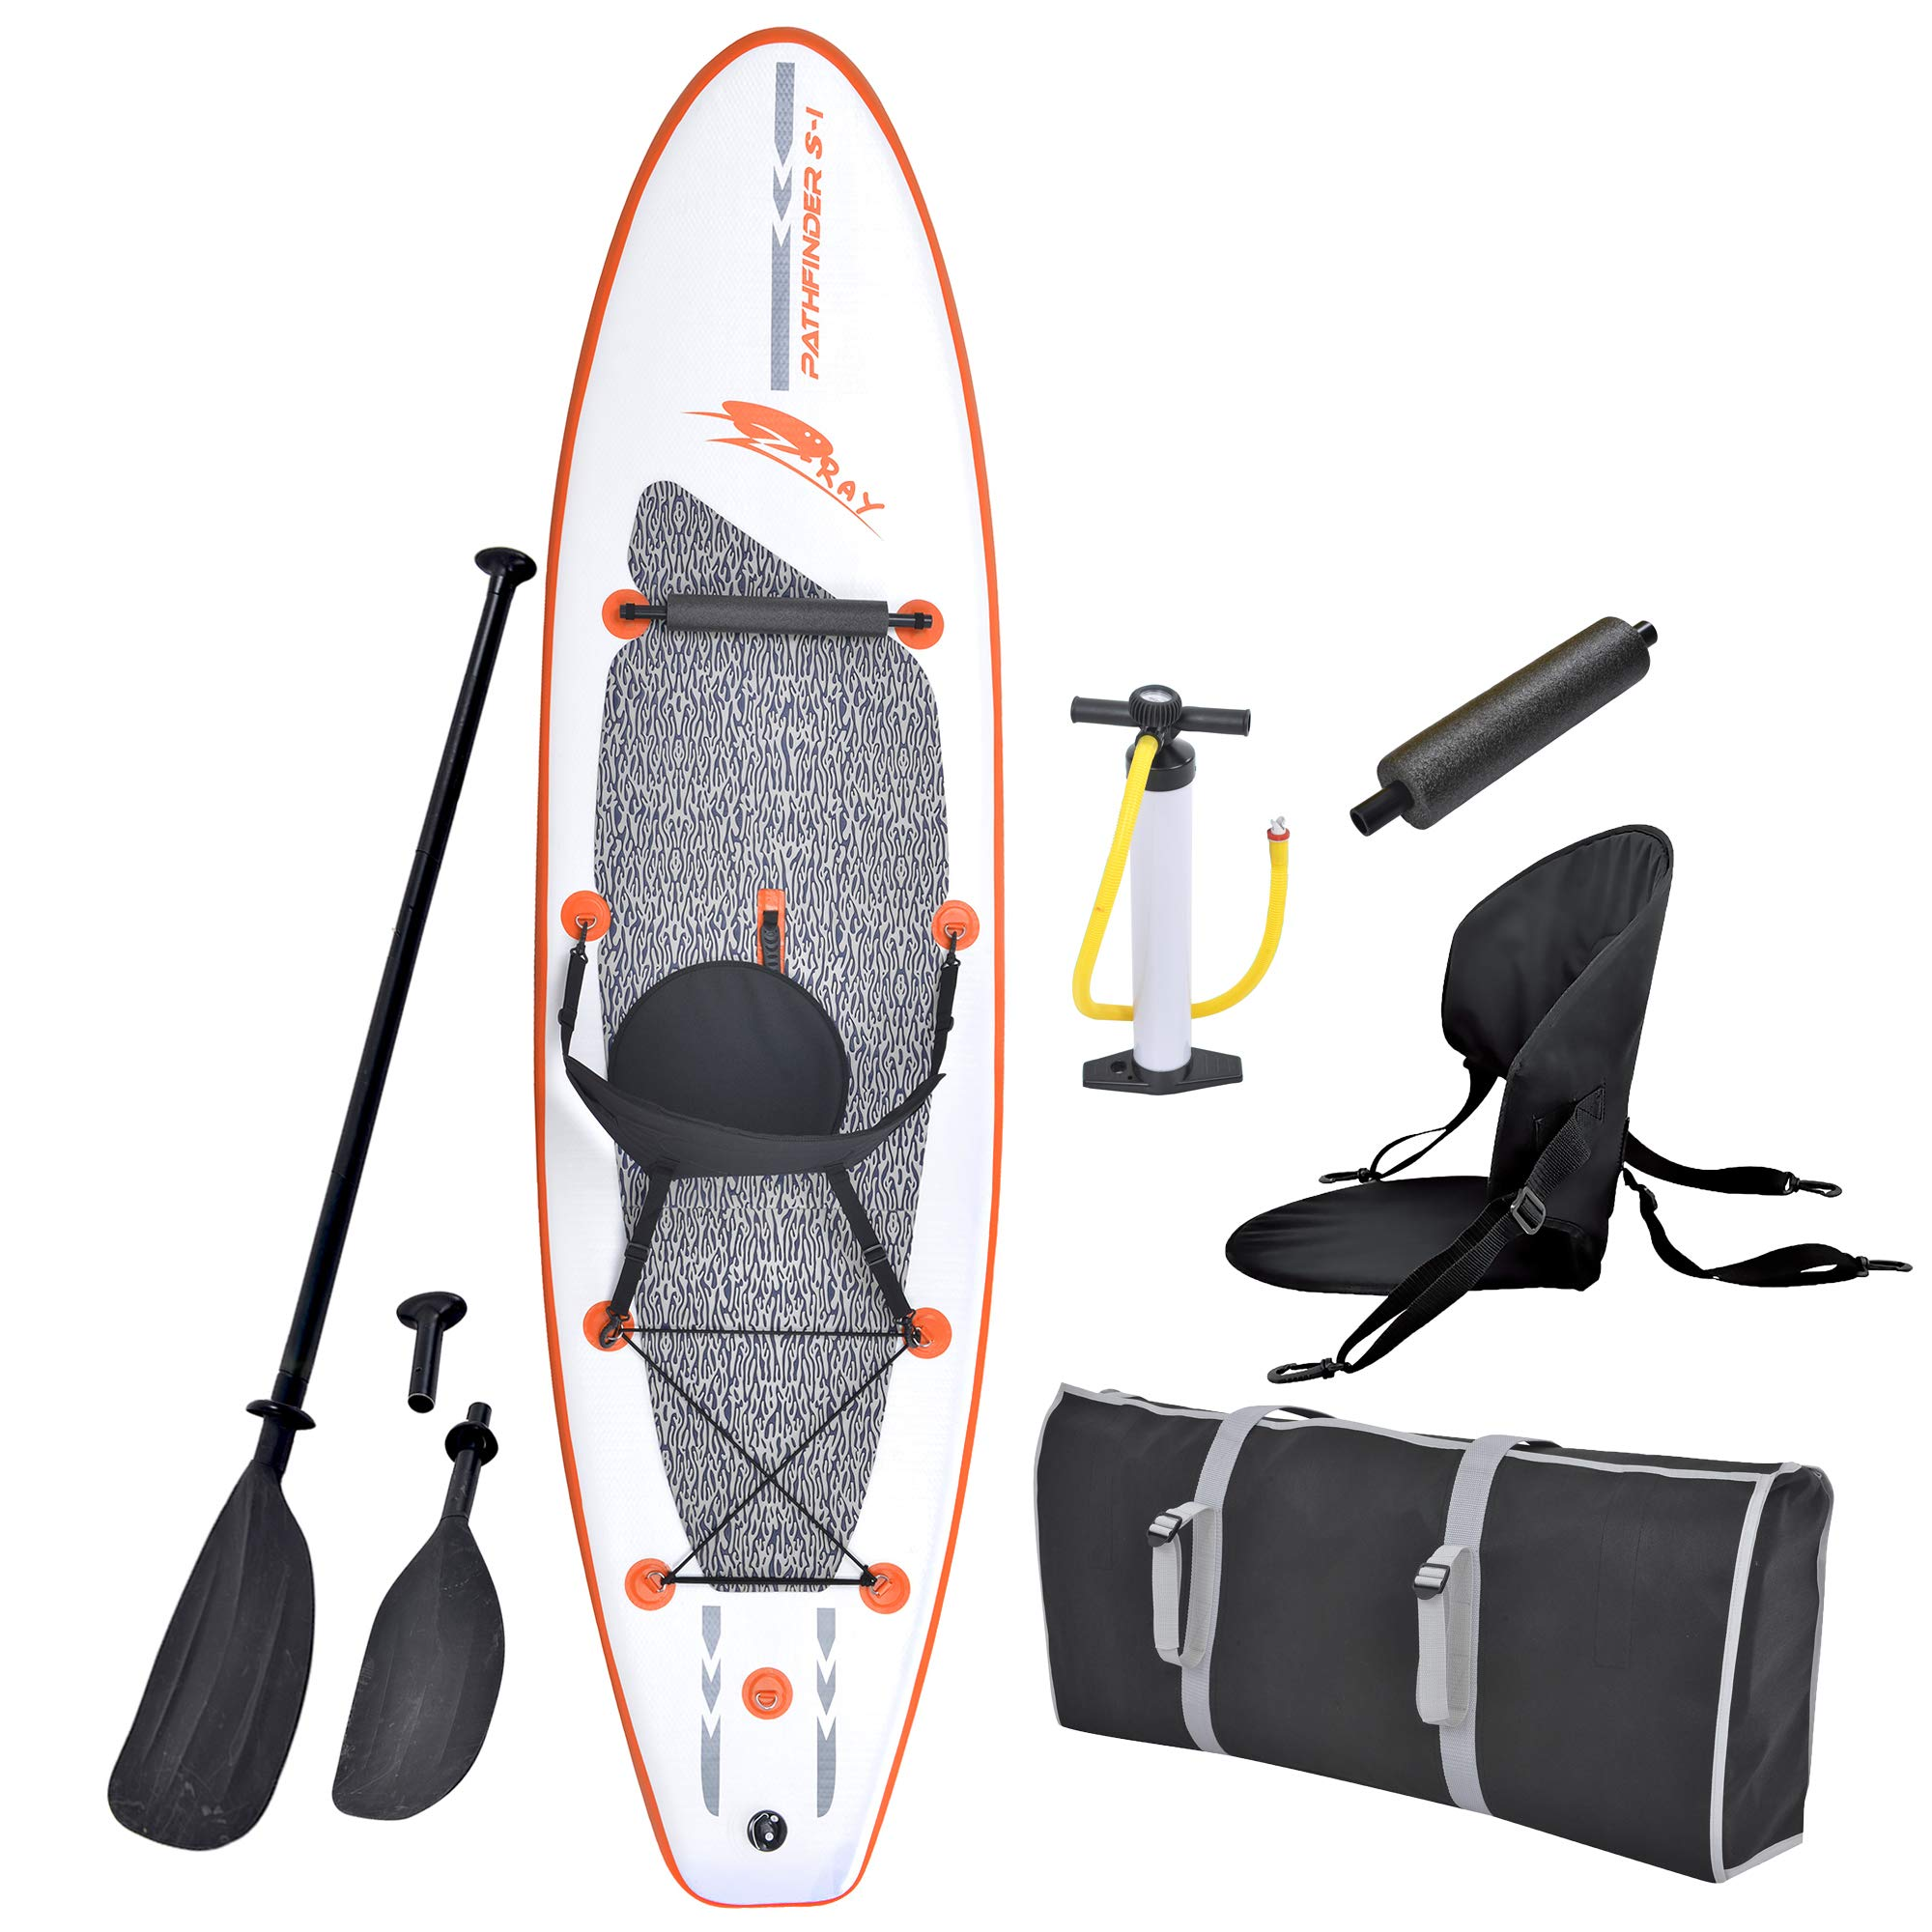 Blue Wave Sports Stingray Inflatable Stand Up Paddleboard with Paddle and Hand Pump, 10-Feet by Blue Wave Sports